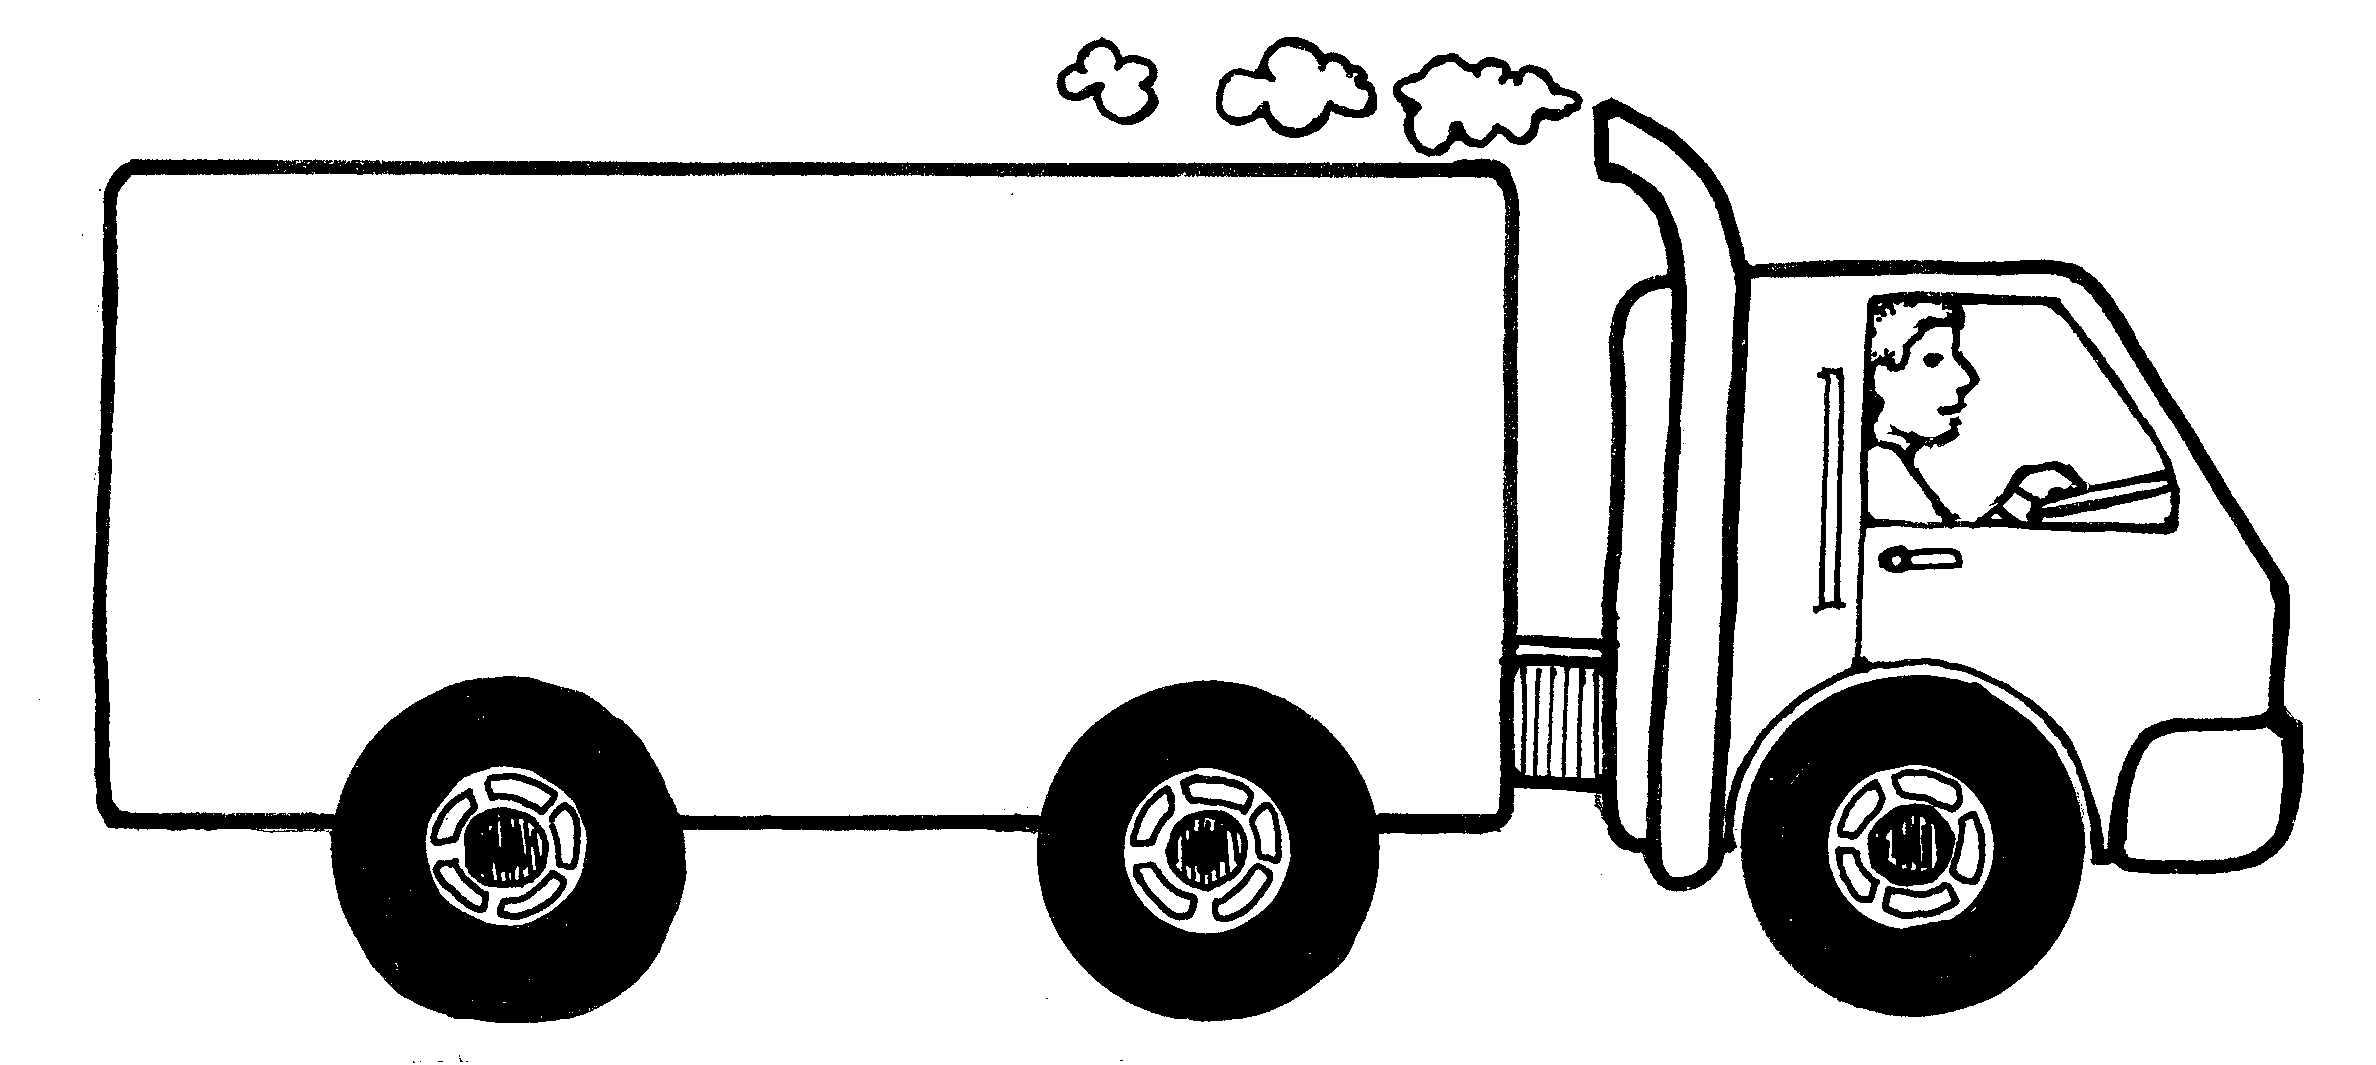 Images For Moving Van Clipart-Images For Moving Van Clipart-1